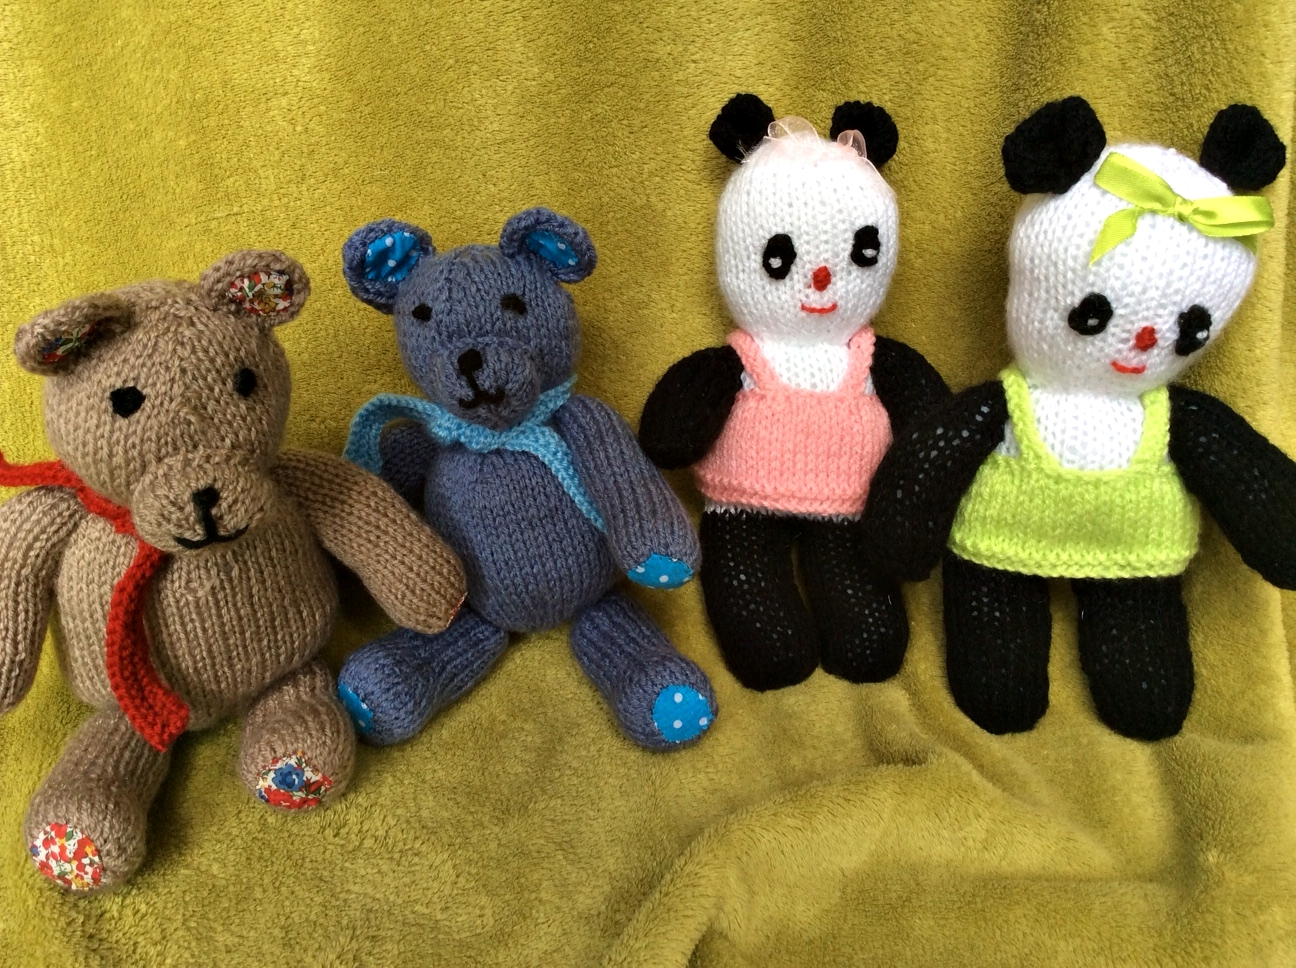 Irresistible: pretty pandas and trendy teds